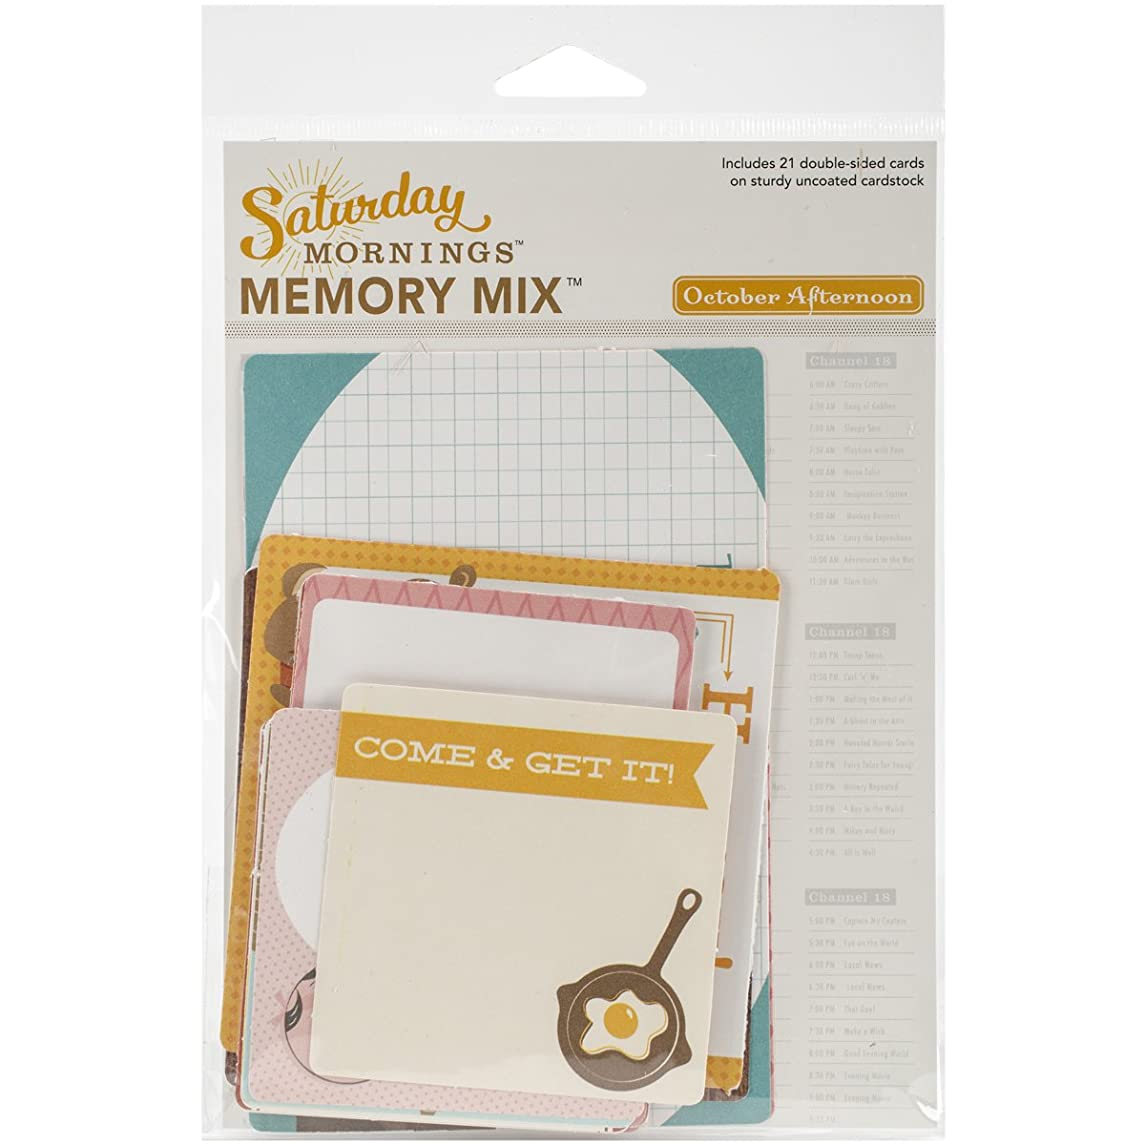 October Afternoon Saturday Mornings Cardstock Memory Card Mix